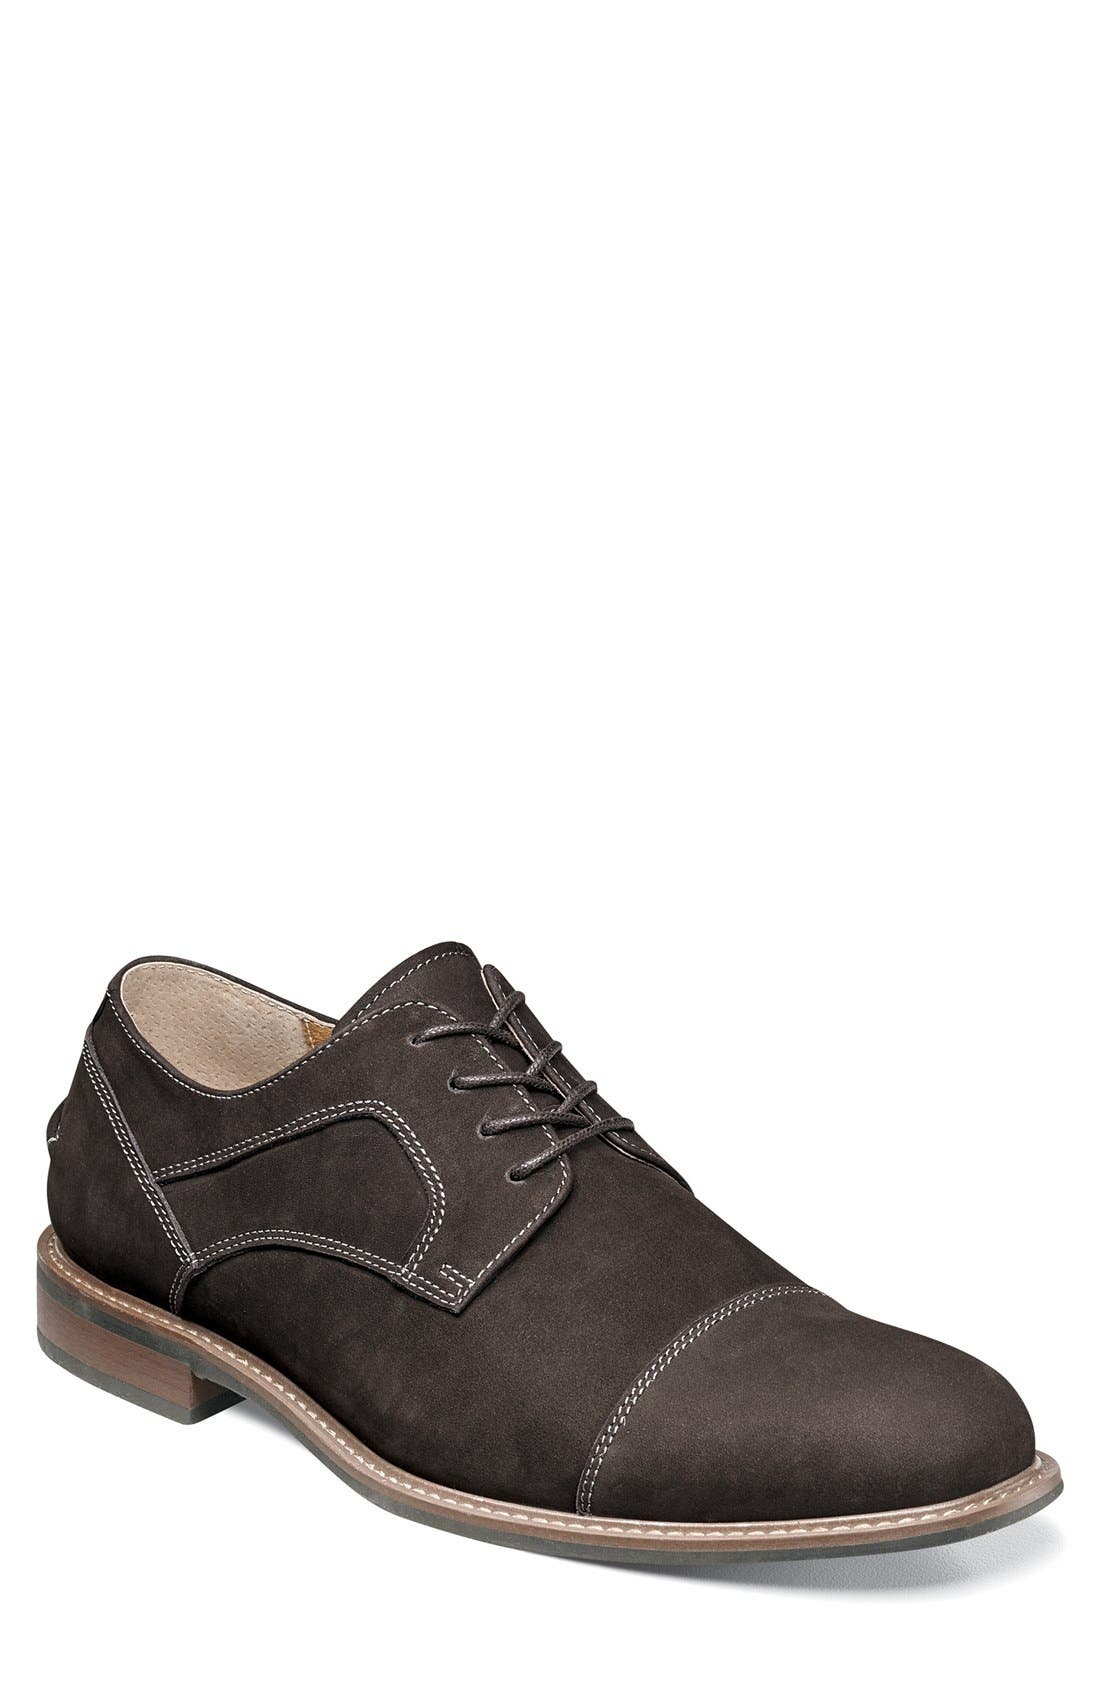 FLORSHEIM Frisco Cap Toe Derby